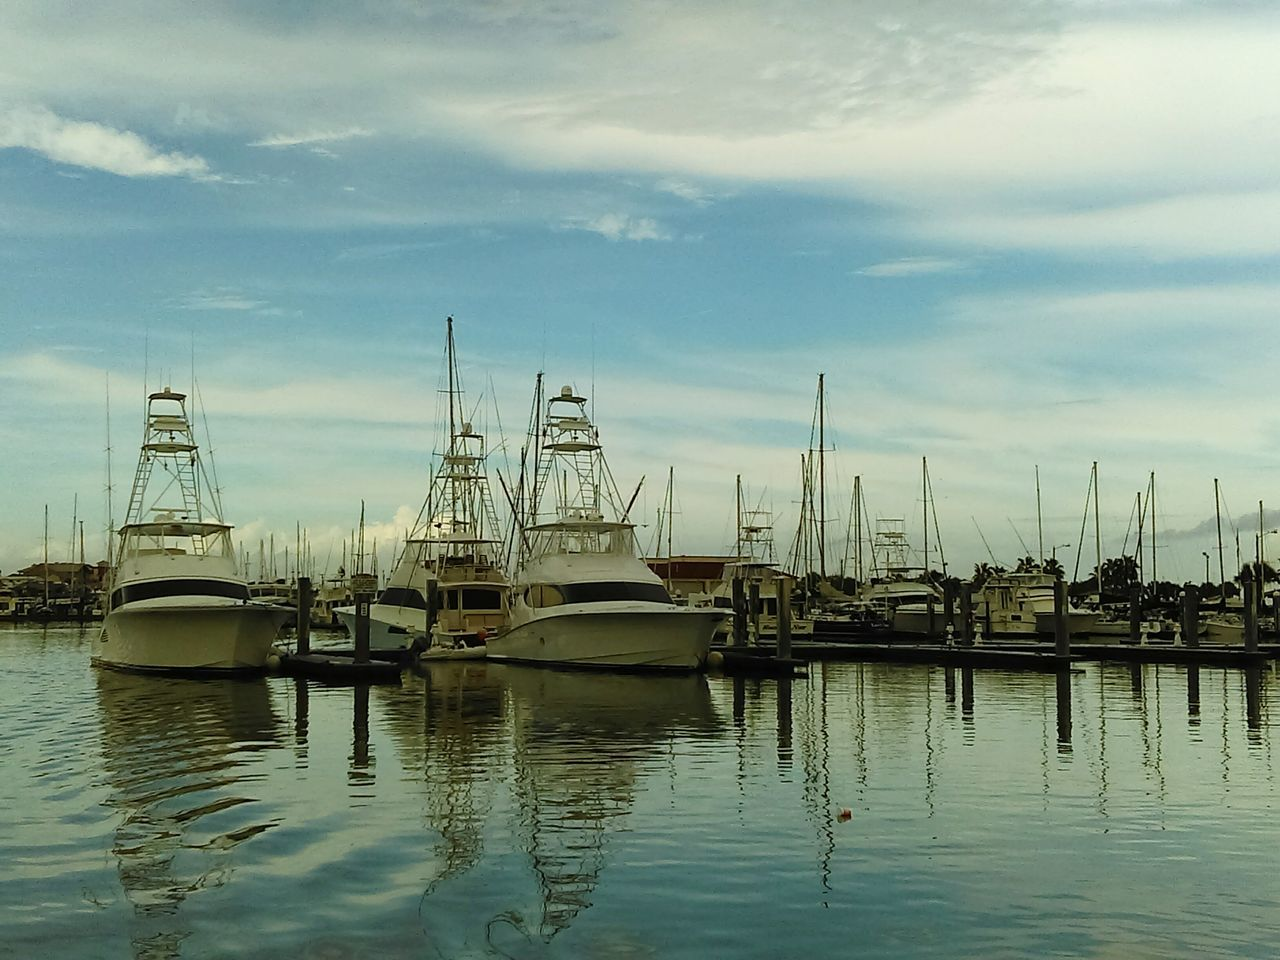 nautical vessel, moored, sky, transportation, mode of transport, cloud - sky, water, harbor, reflection, mast, boat, no people, nature, marina, outdoors, waterfront, day, tranquility, sailboat, commercial dock, scenics, yacht, beauty in nature